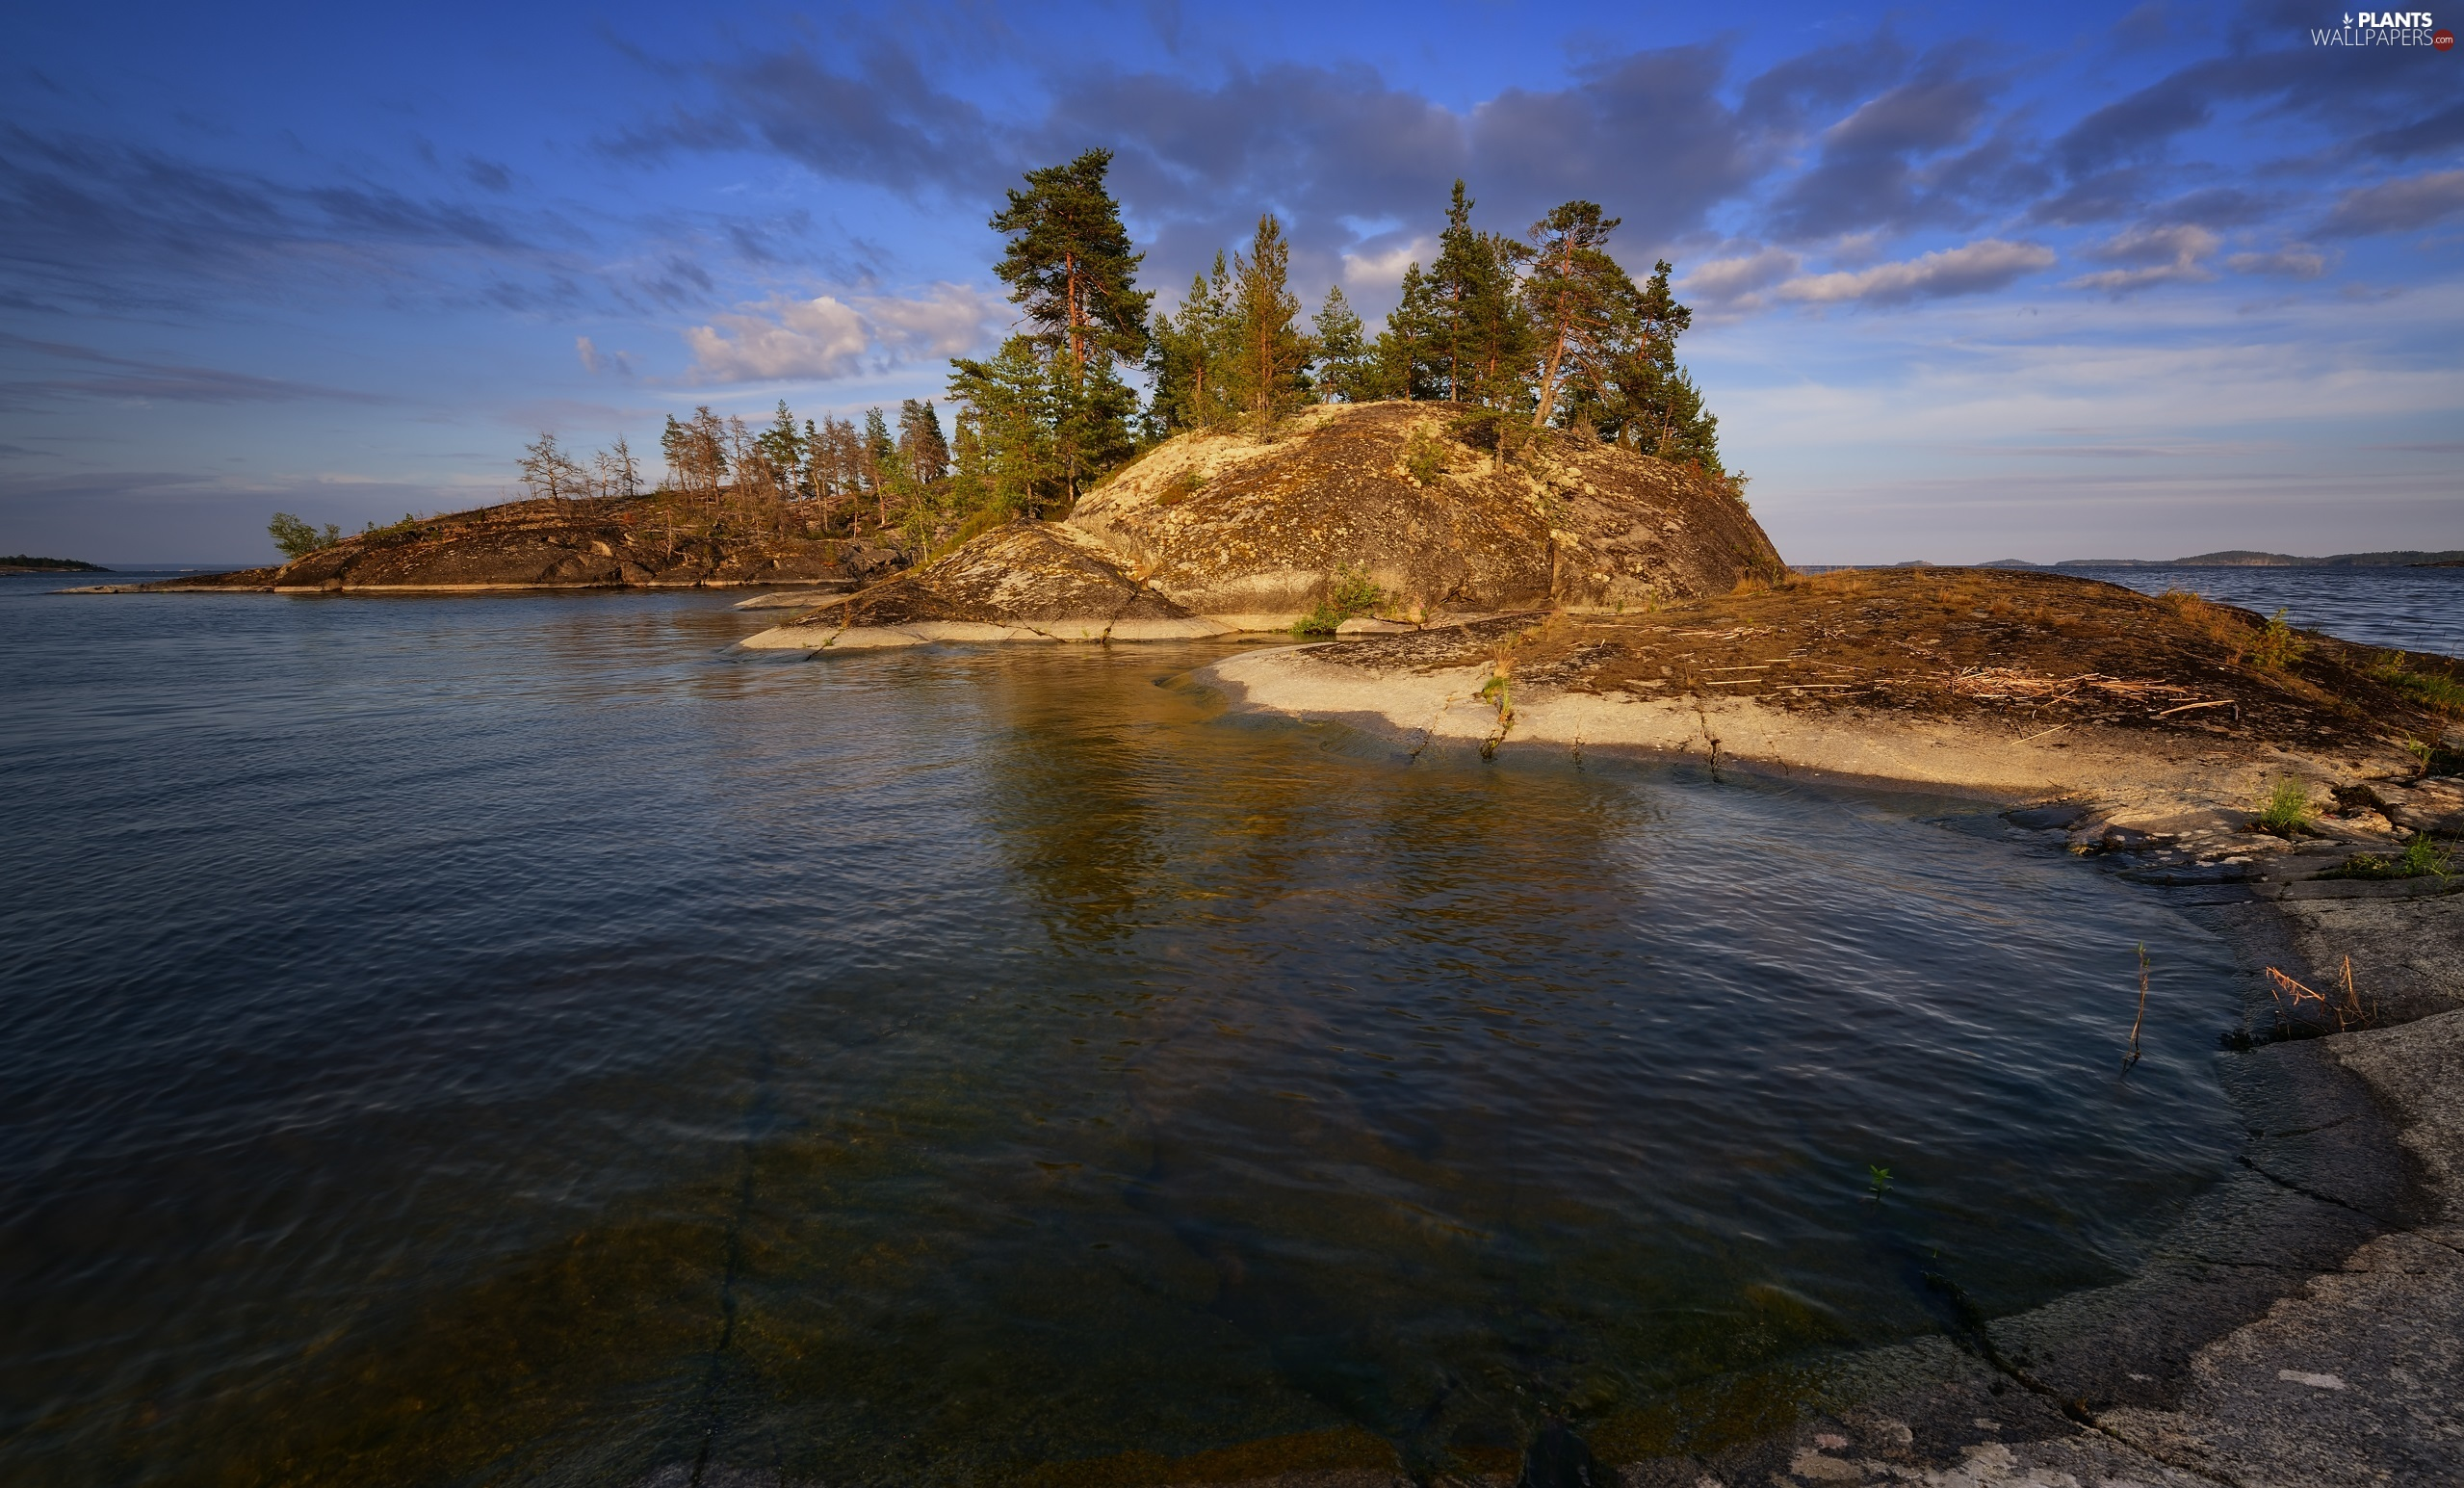 trees, Islet, Karelia, rocks, Lake Ladoga, viewes, Russia